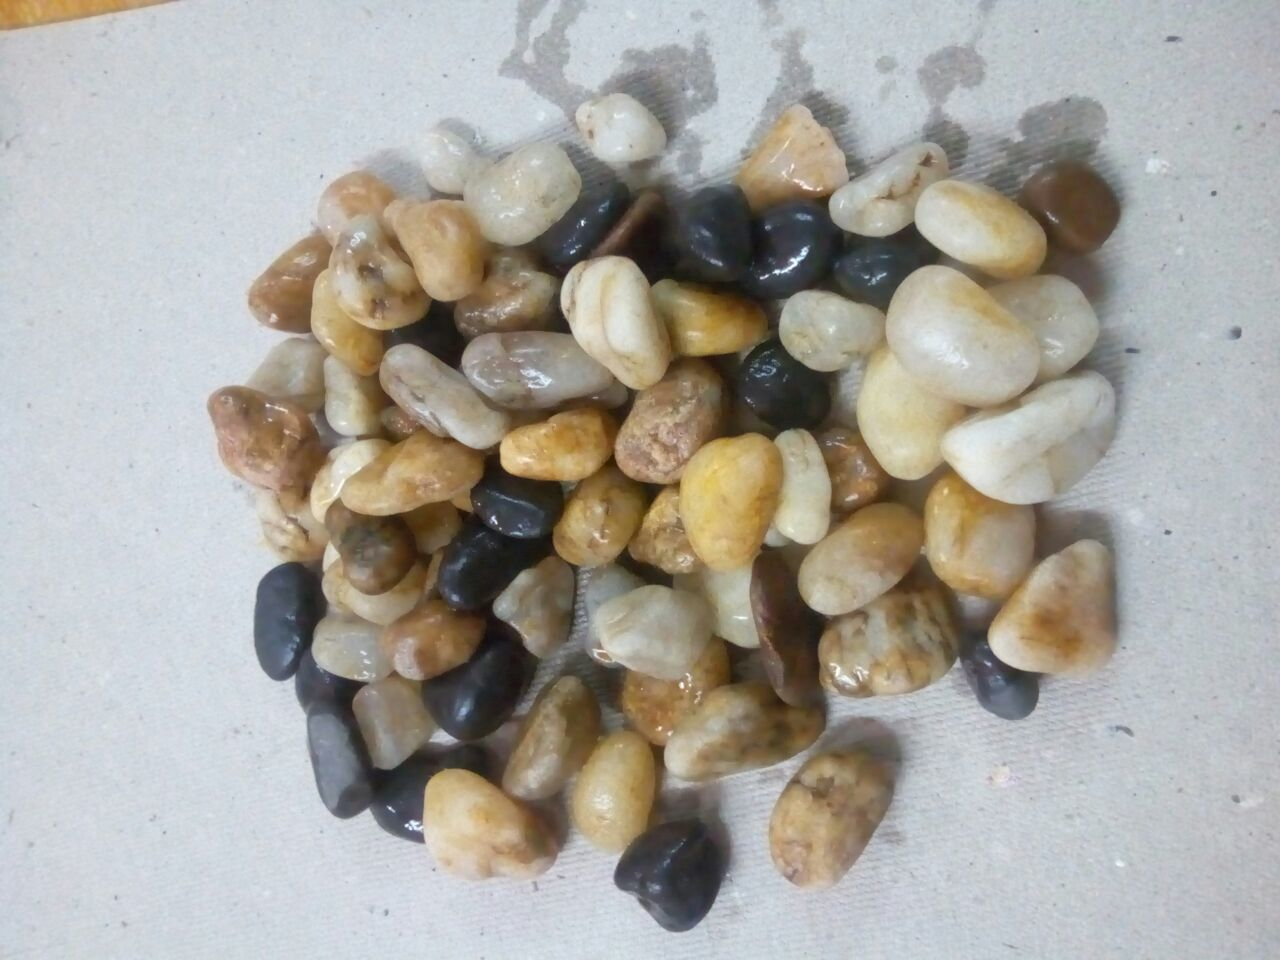 Hot Sale Natural Color Swimming Pool Mix Gravel Pebble Washed Stone